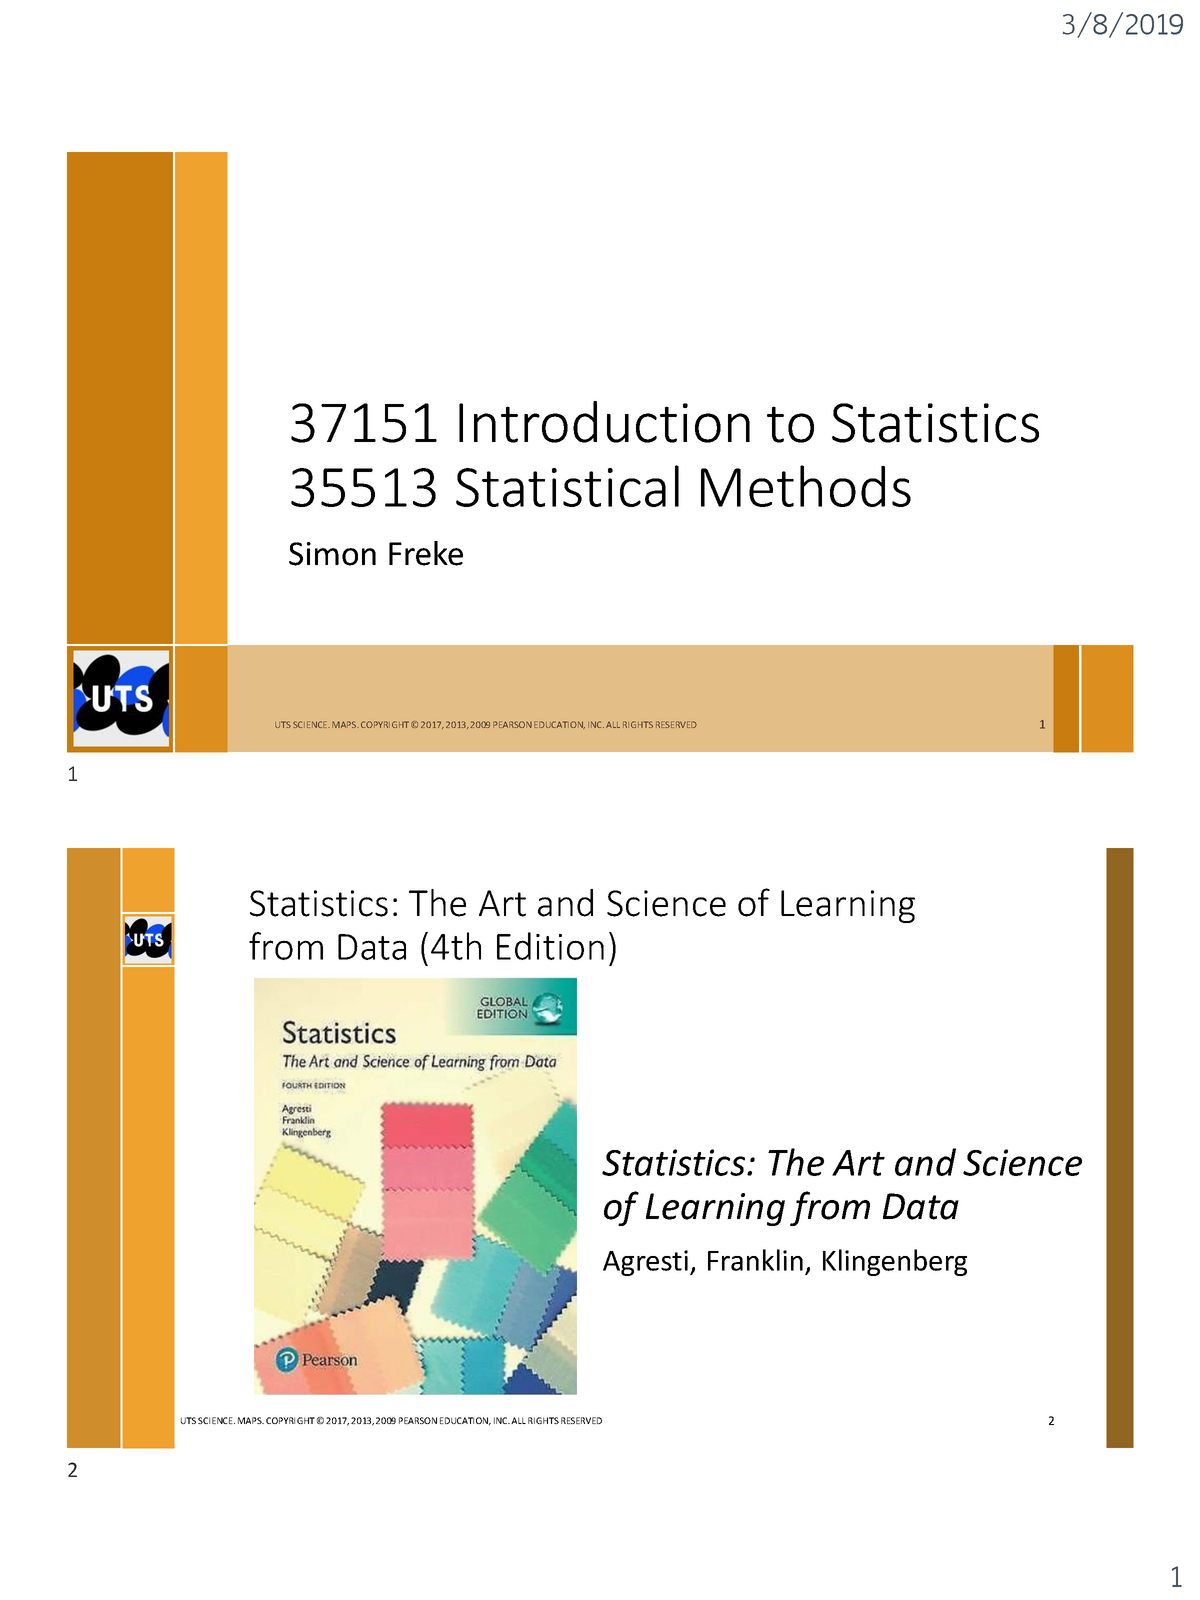 37151 Lecture 1 Notes - Annotated - 035151 : Introduction to